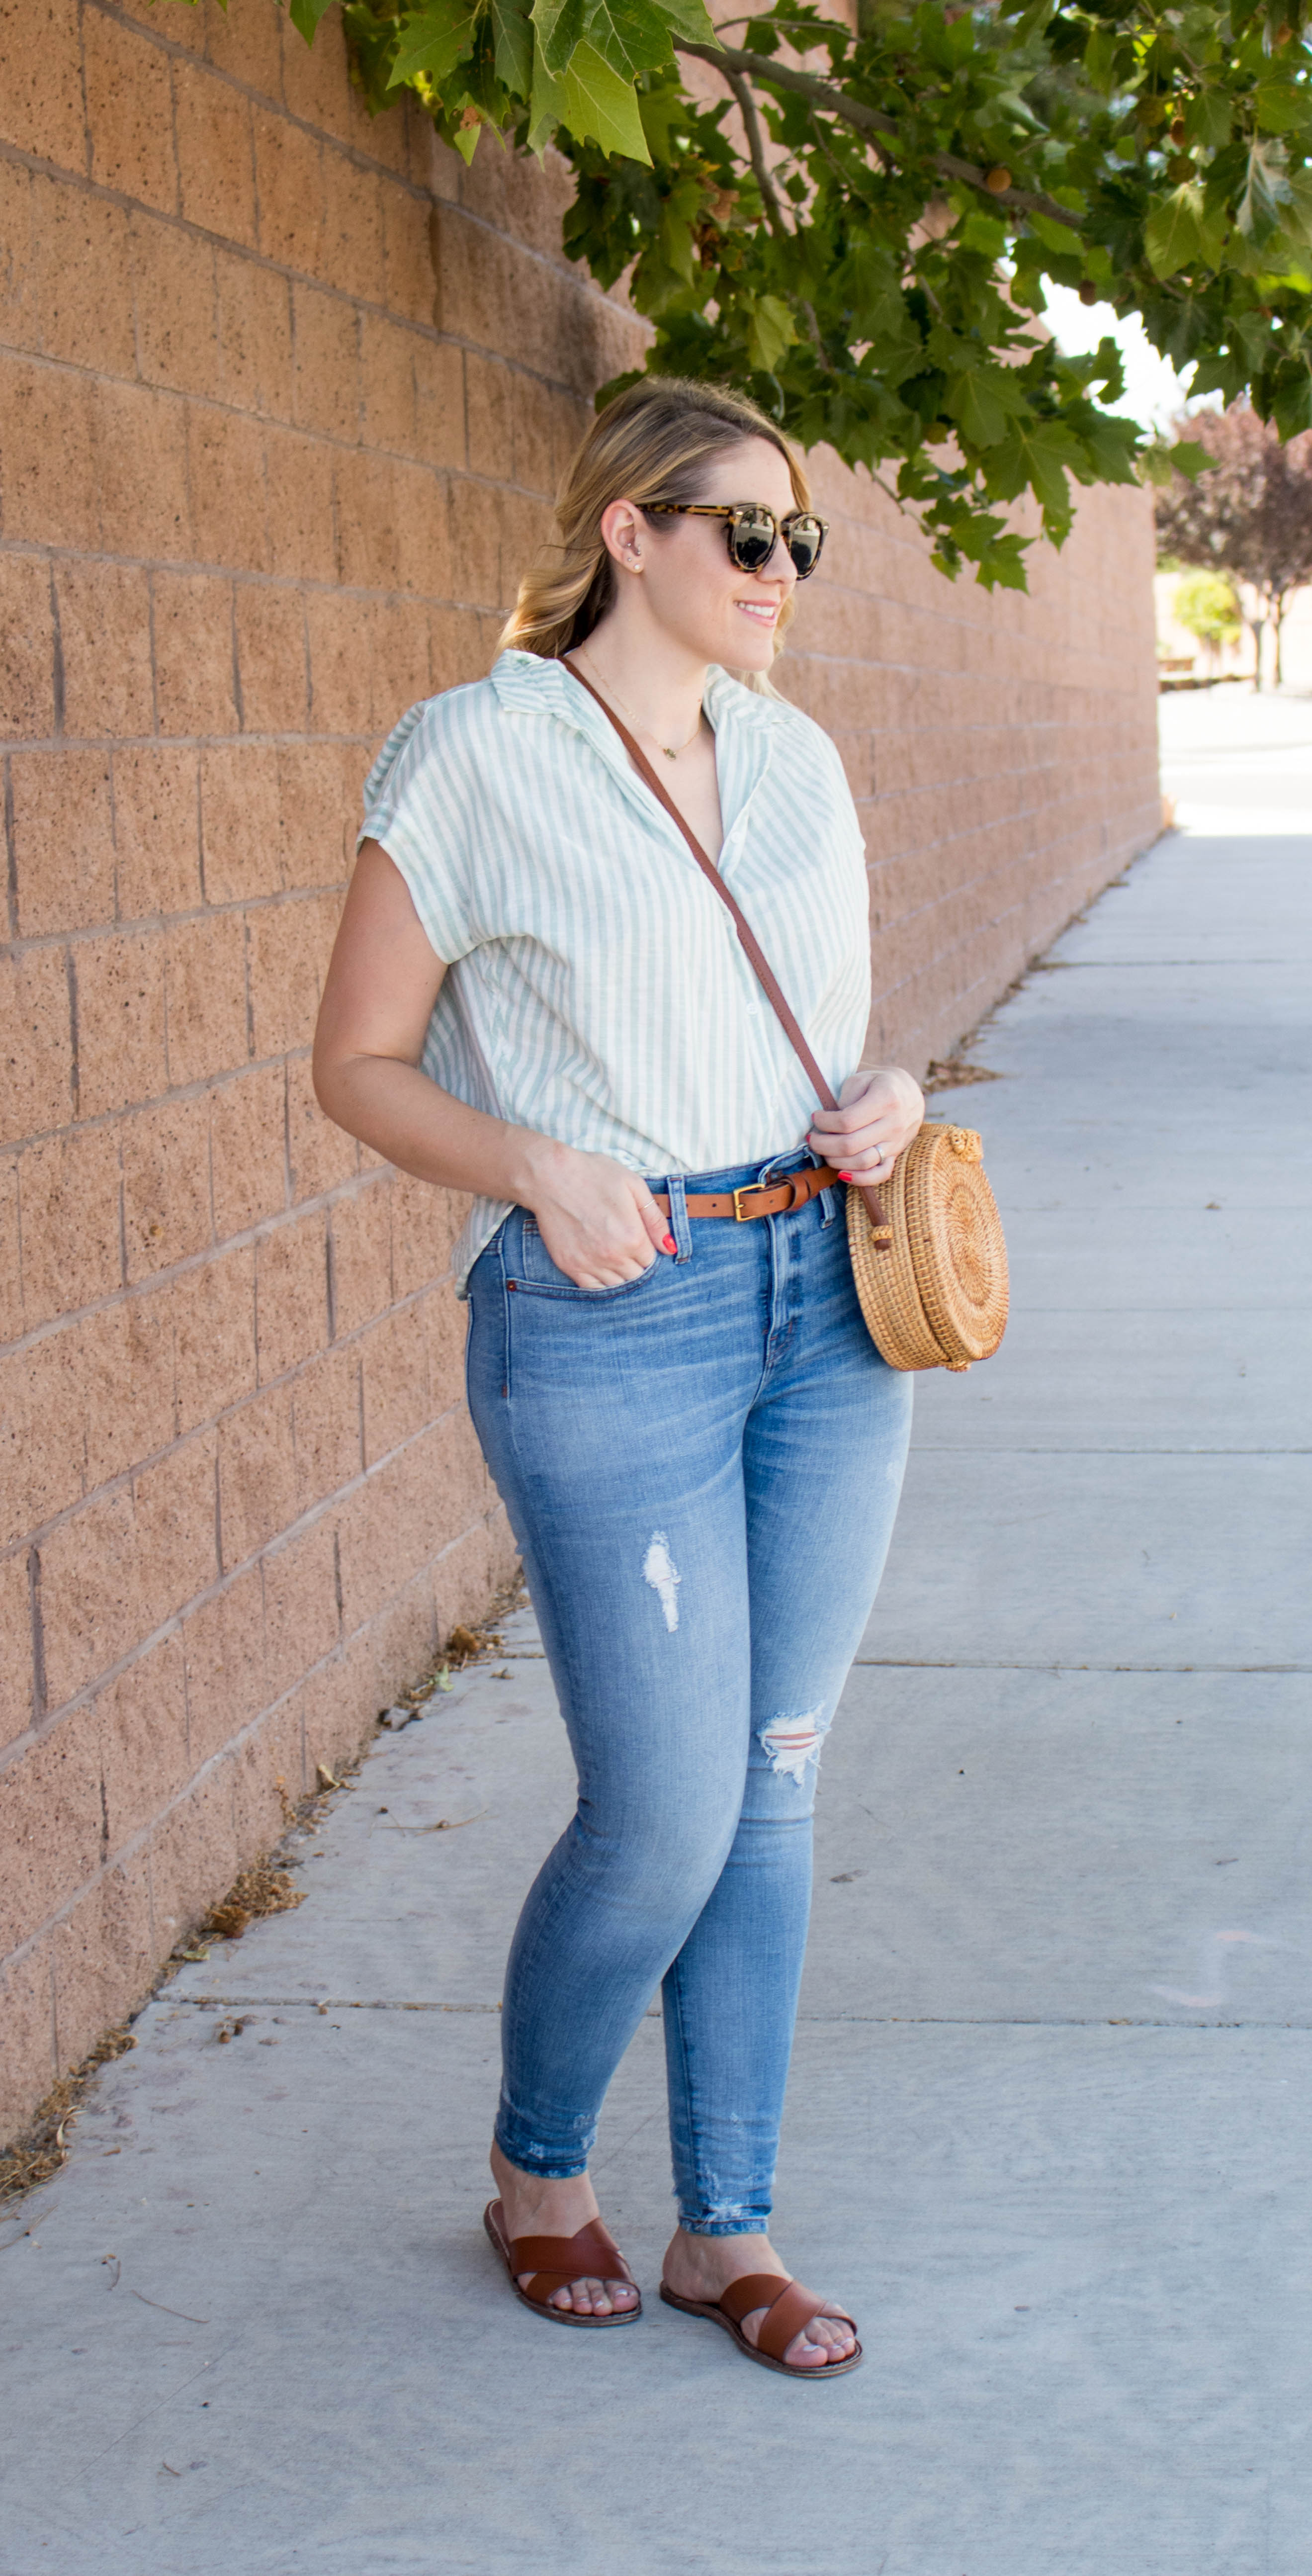 madewell high rise skinny jeans #madewell #everydaymadewell #jeans #denim